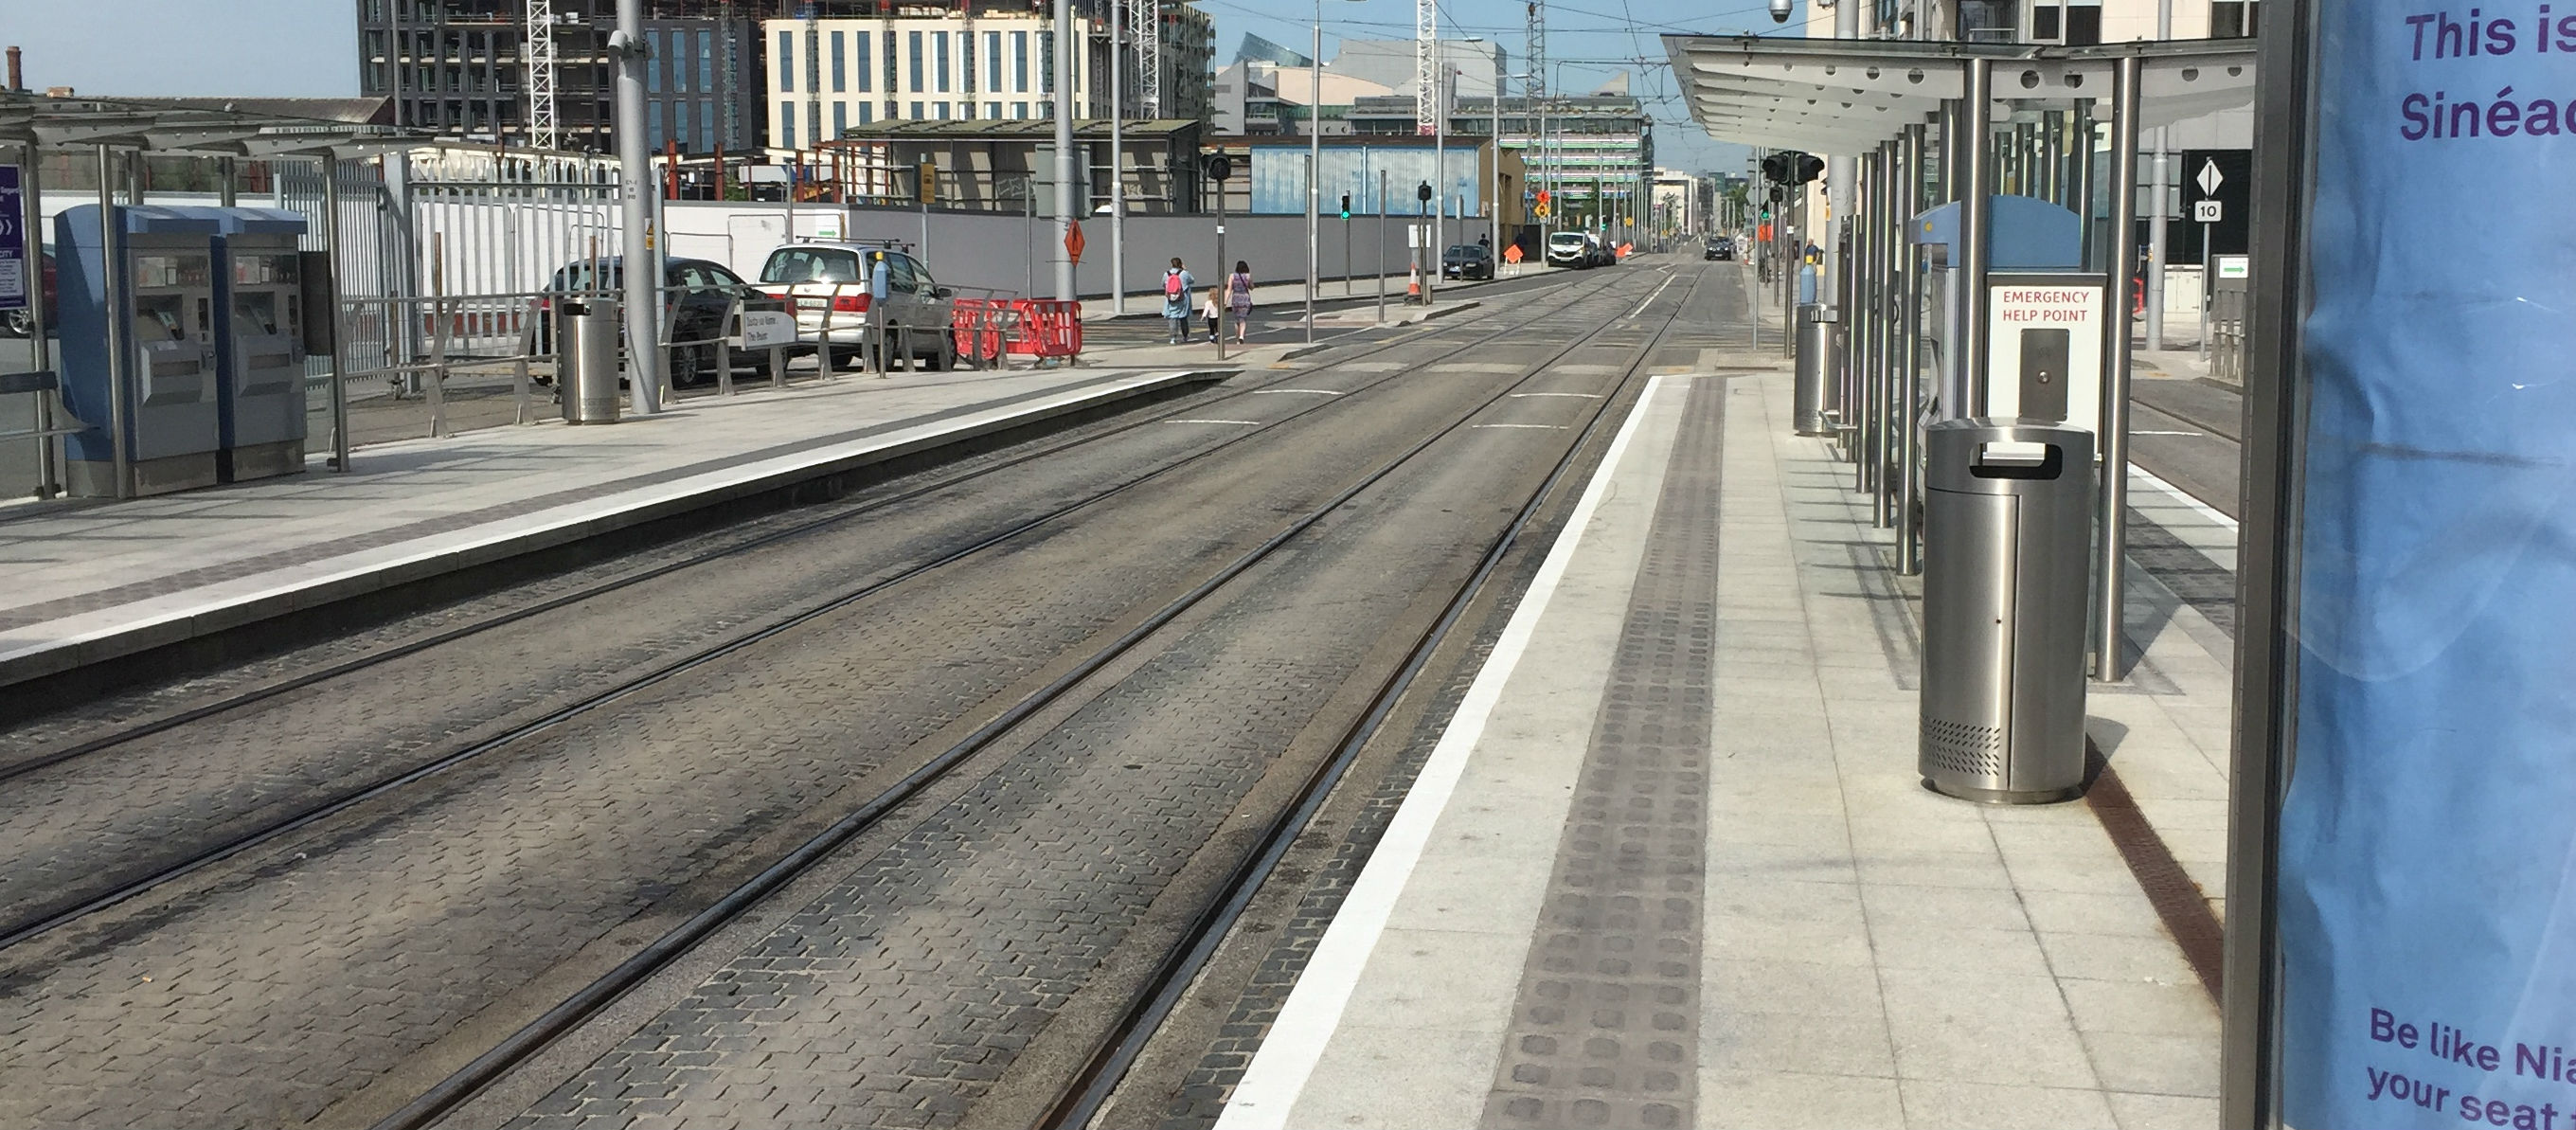 Crackdown On Drivers Blocking The Luas